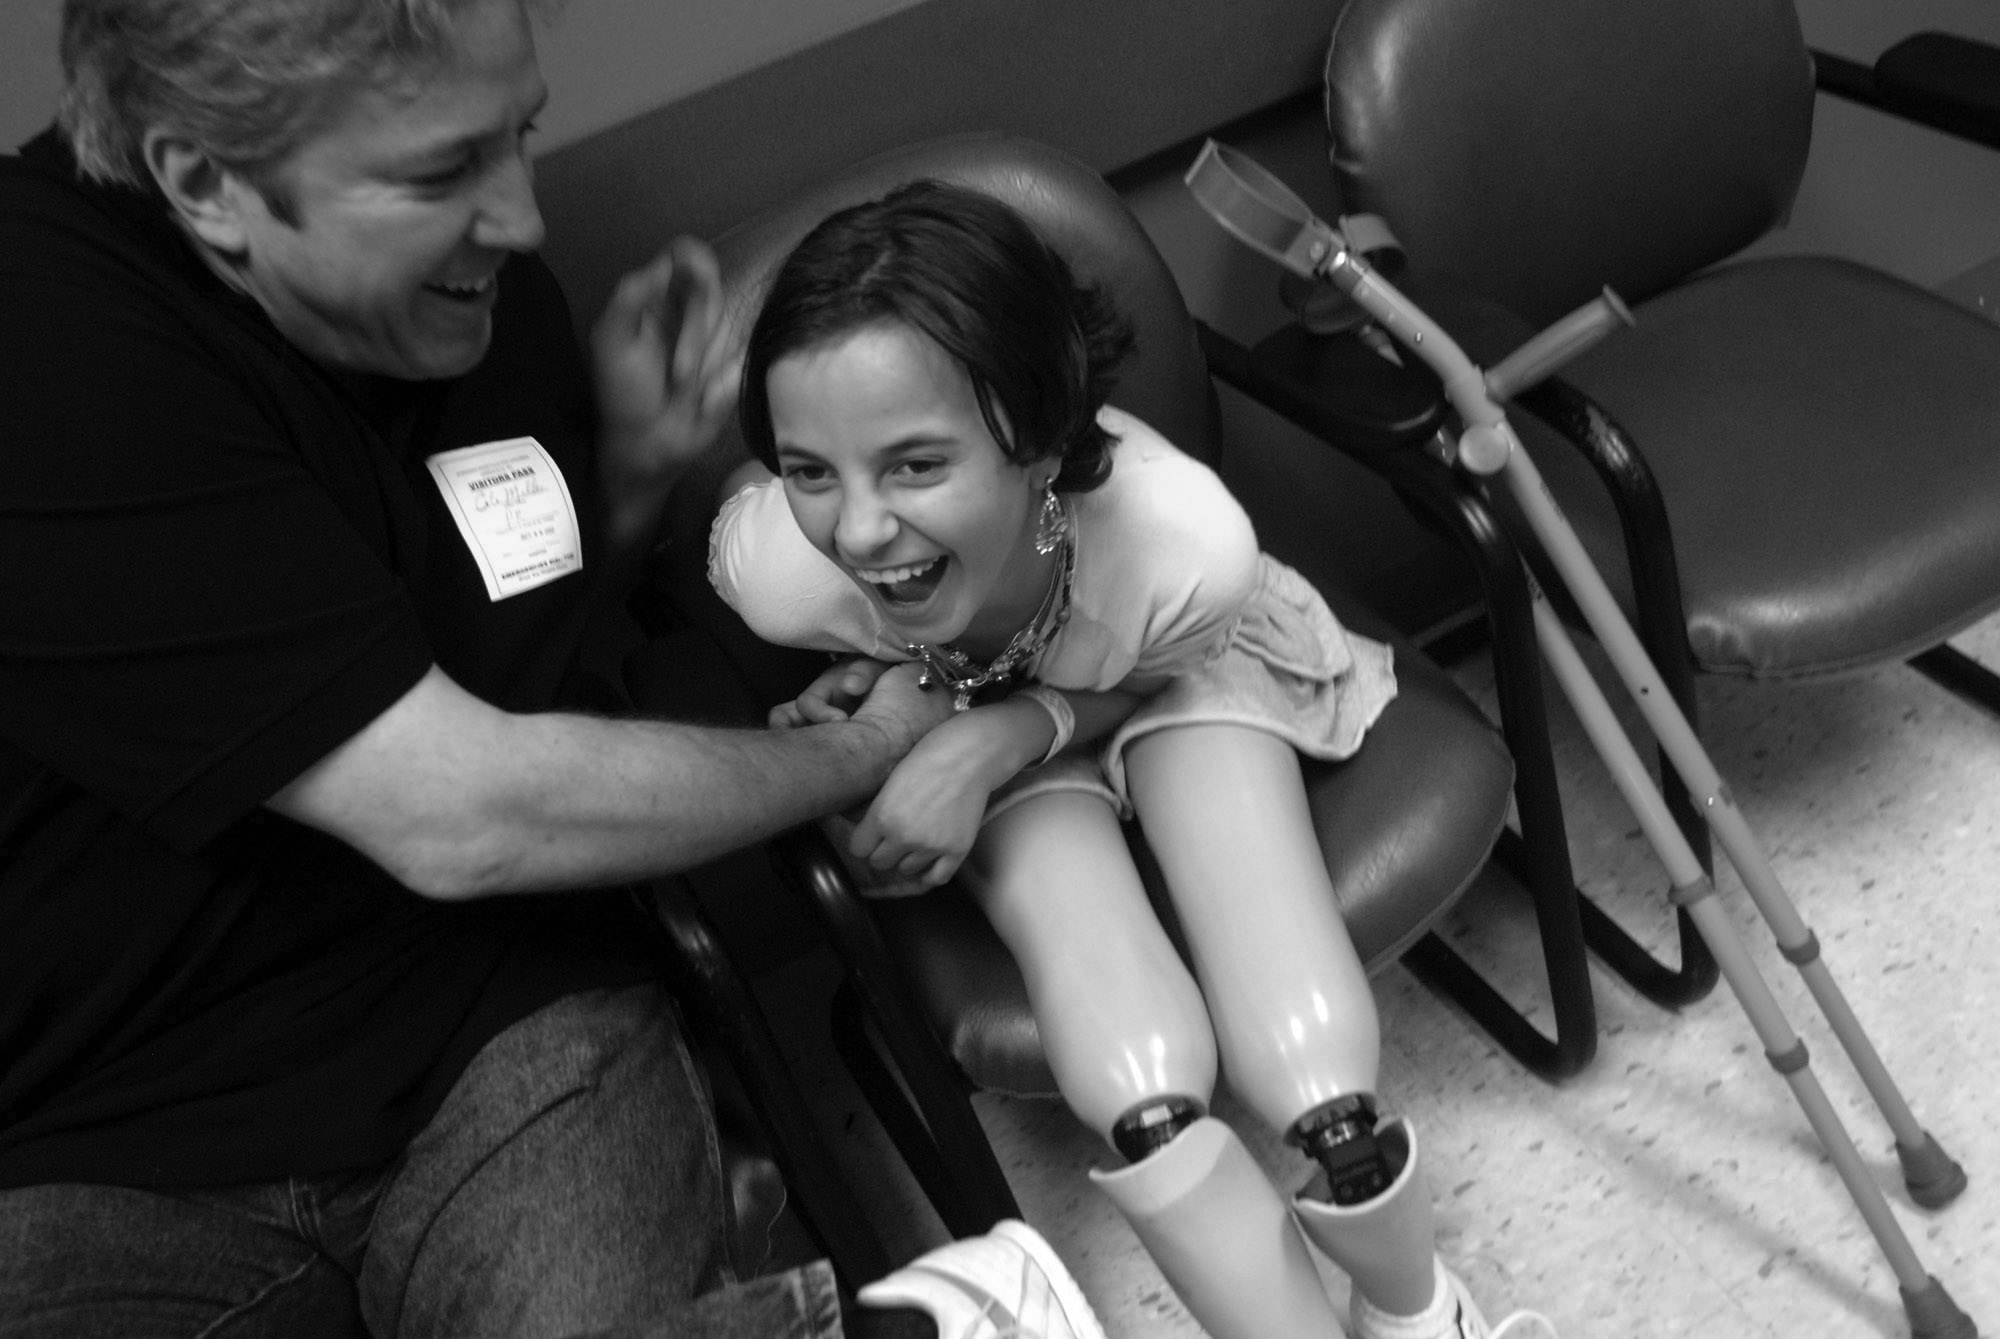 Cole Miller, left, tickles Salee Allawe as they attend her last doctor's visit at Shriners Hospital before she travels home to Iraq.  (October 8, 2007)